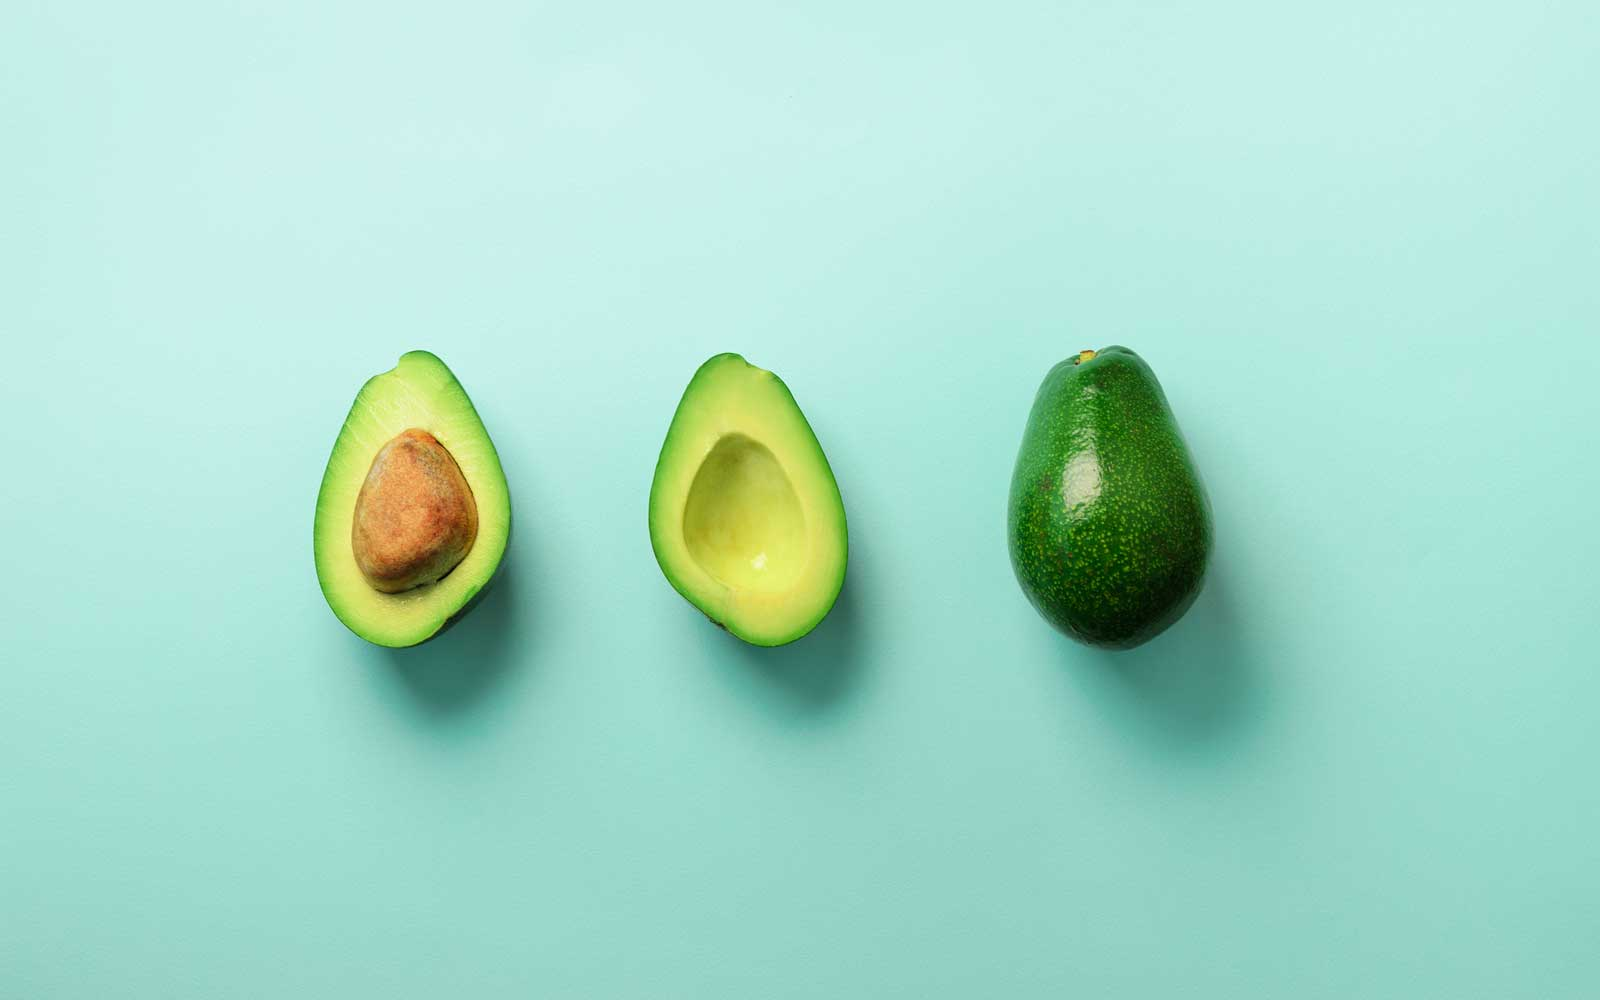 New Zealand Is Being Hit by an Avocado Crime Spree